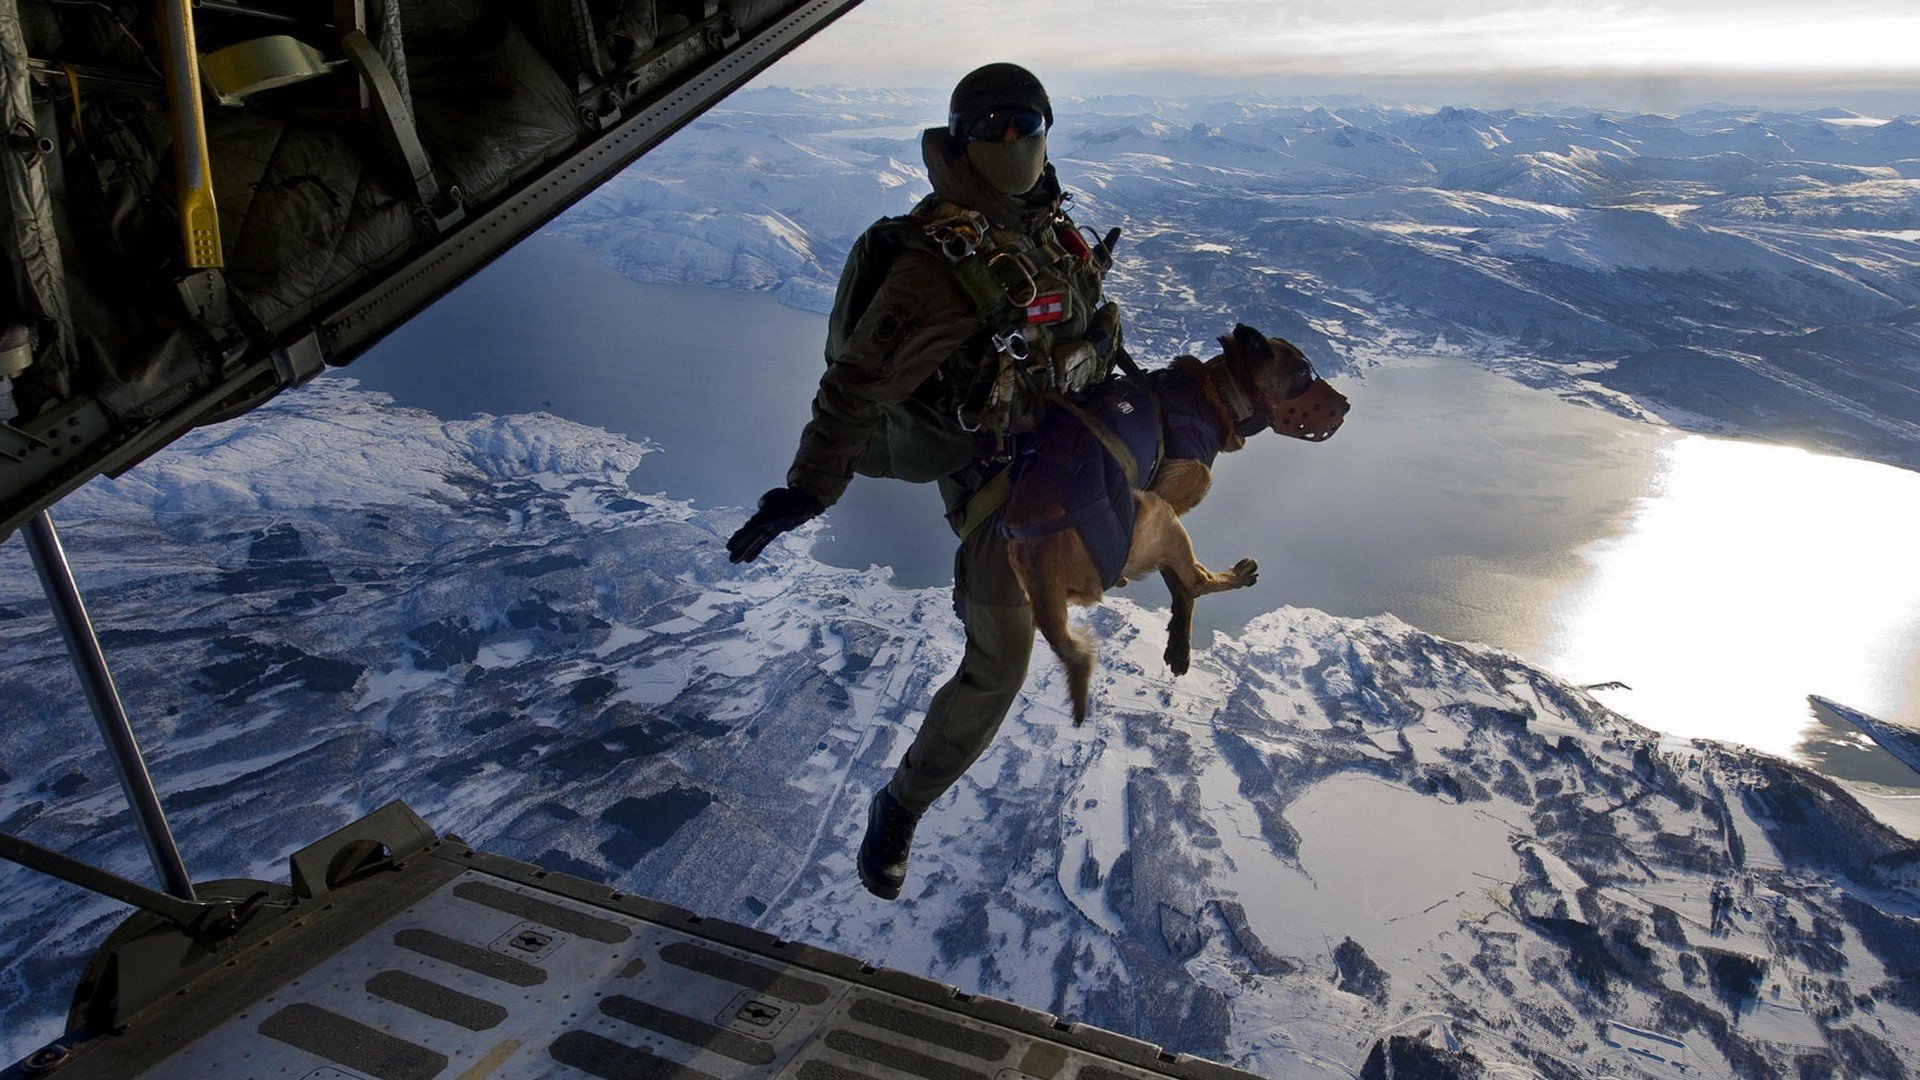 Husky Dog Hd Wallpapers Dog Soldier Landscape Lake Mountain Airplane